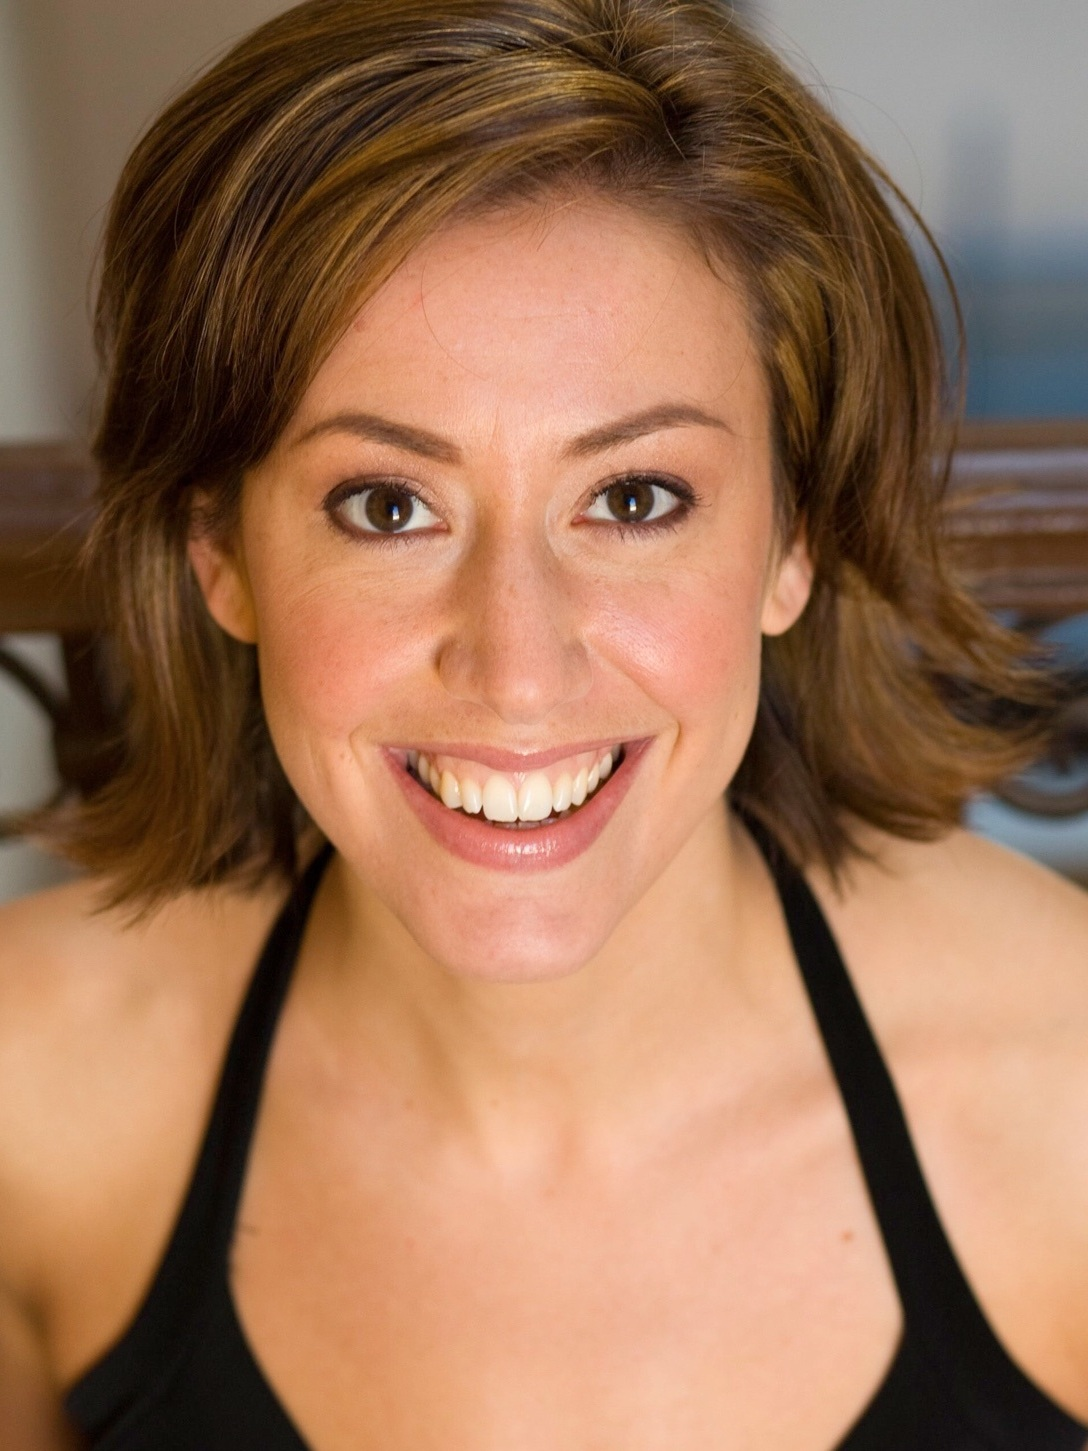 Julie Tomaino - Director/Choreographer